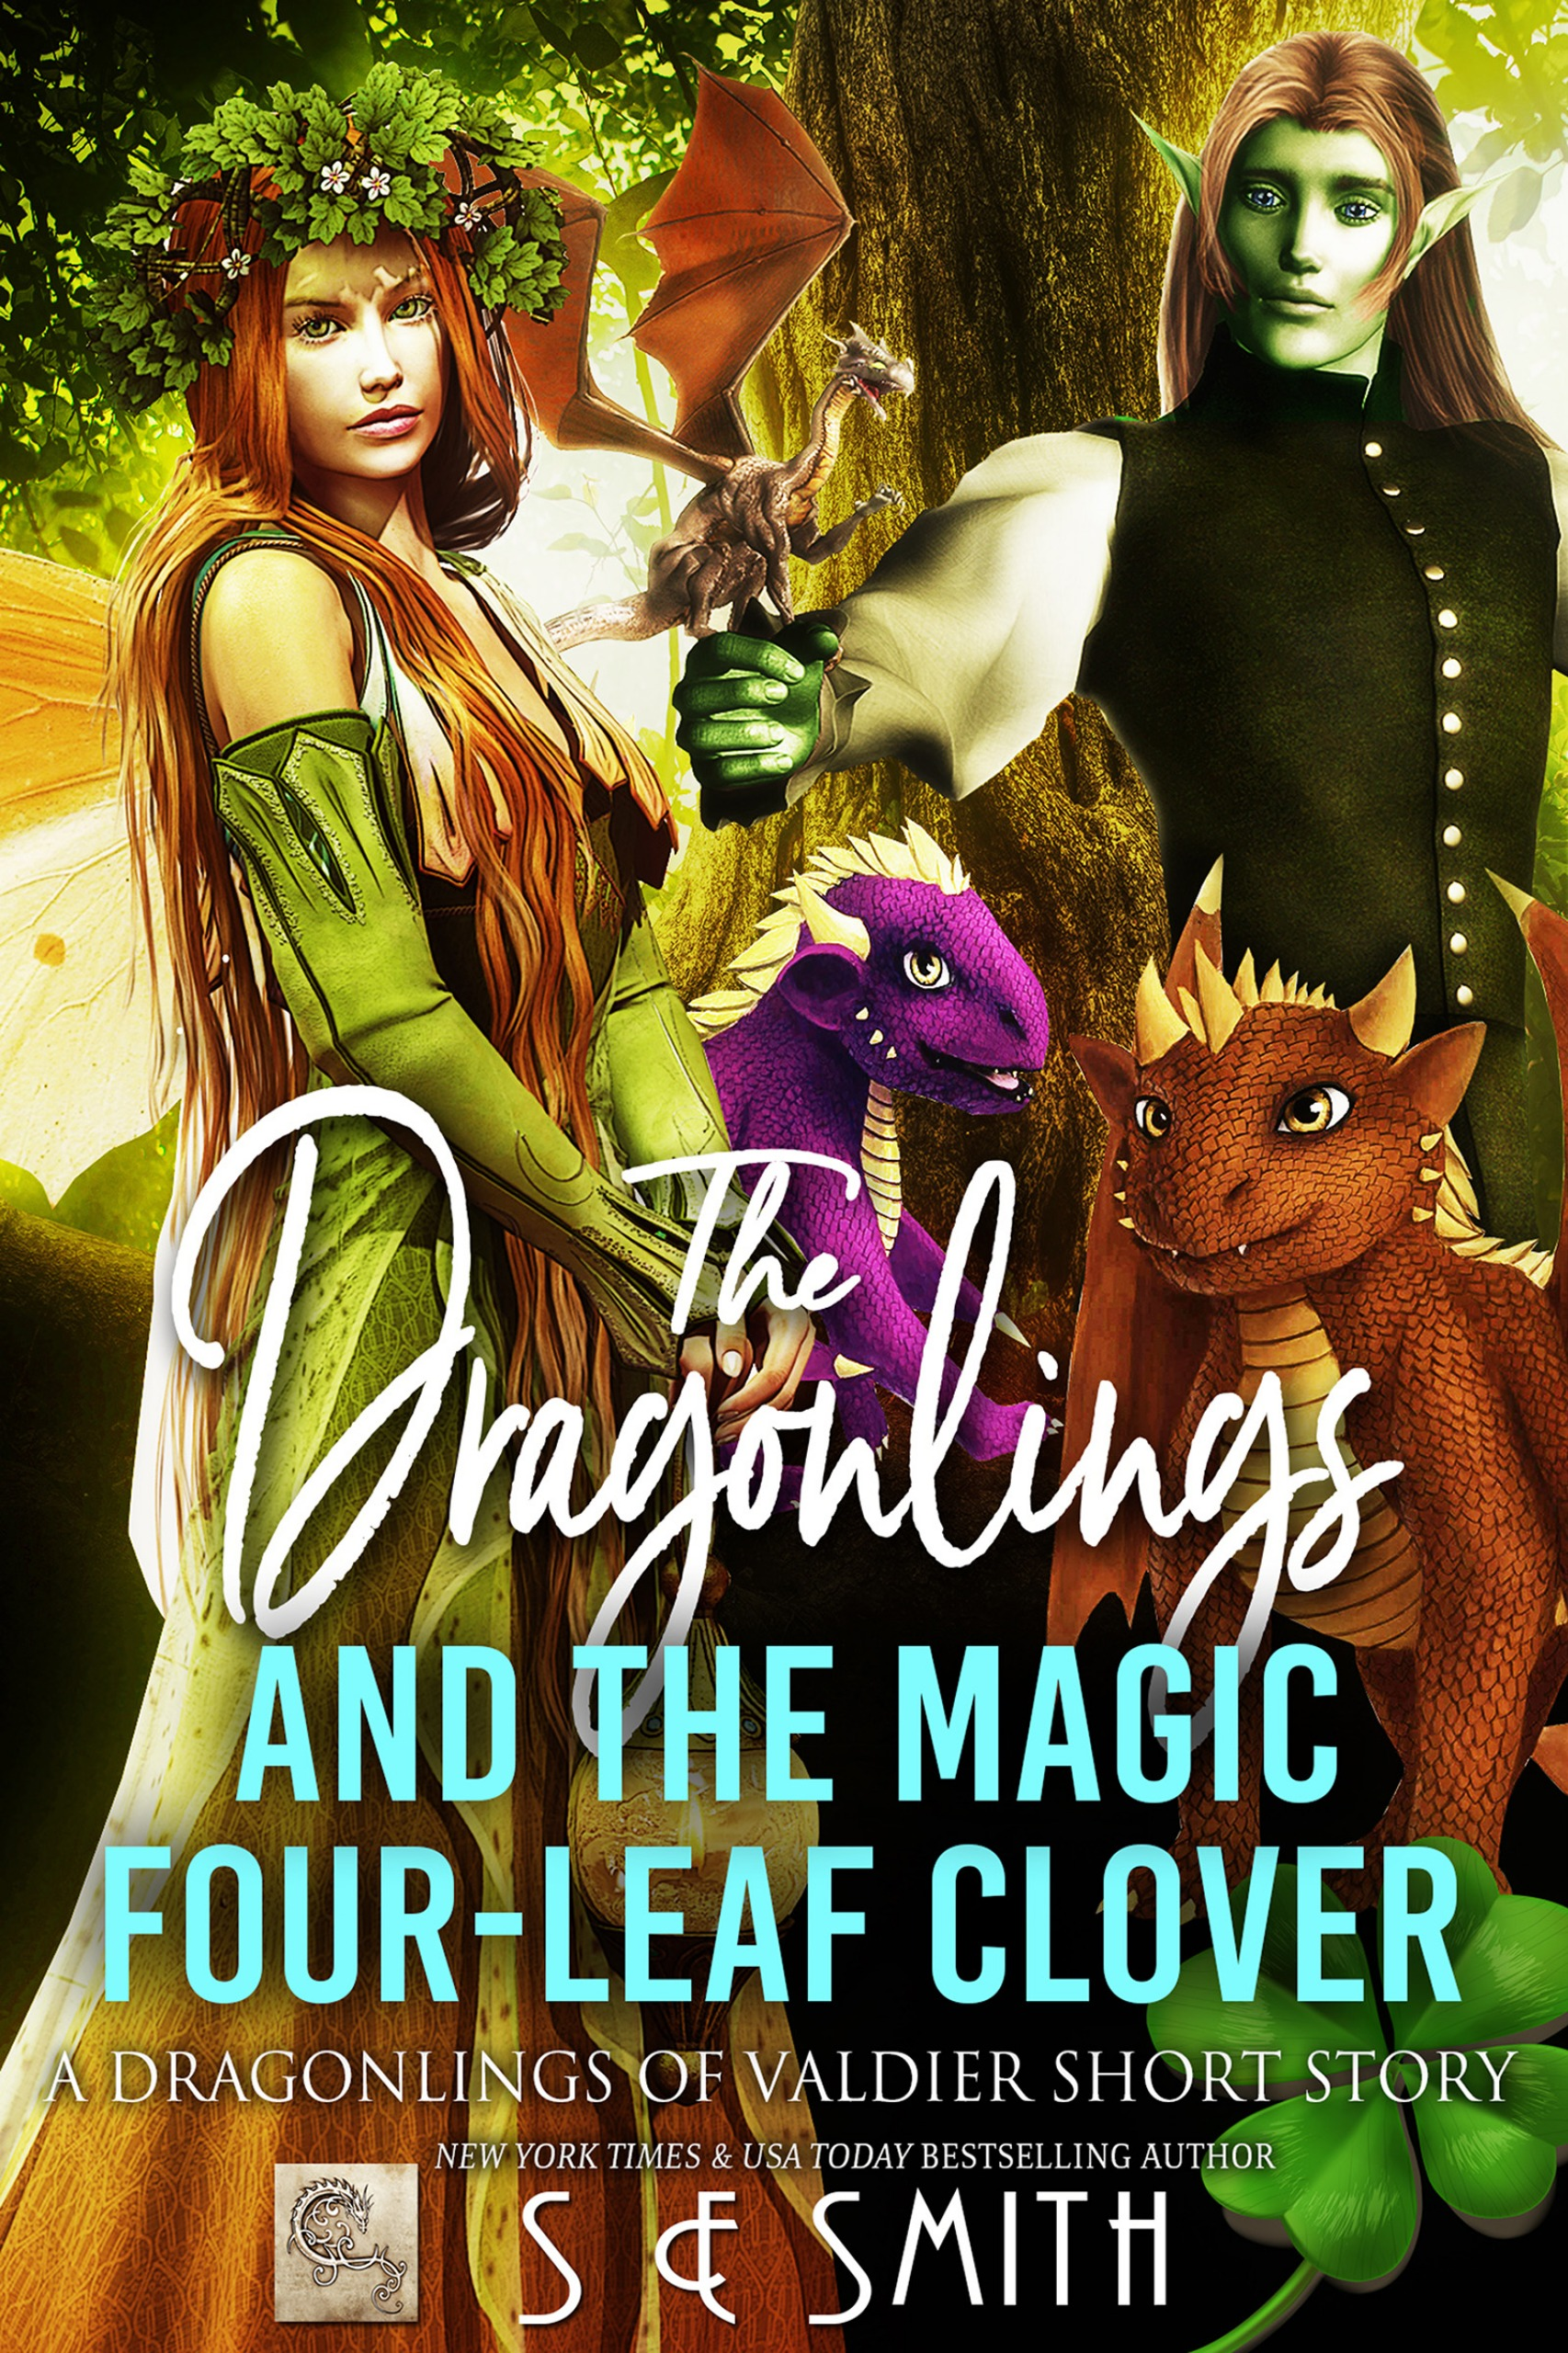 The Dragonlings and the Magic Four-Leaf Clover: A Dragonlings of Valdier (Paperback)